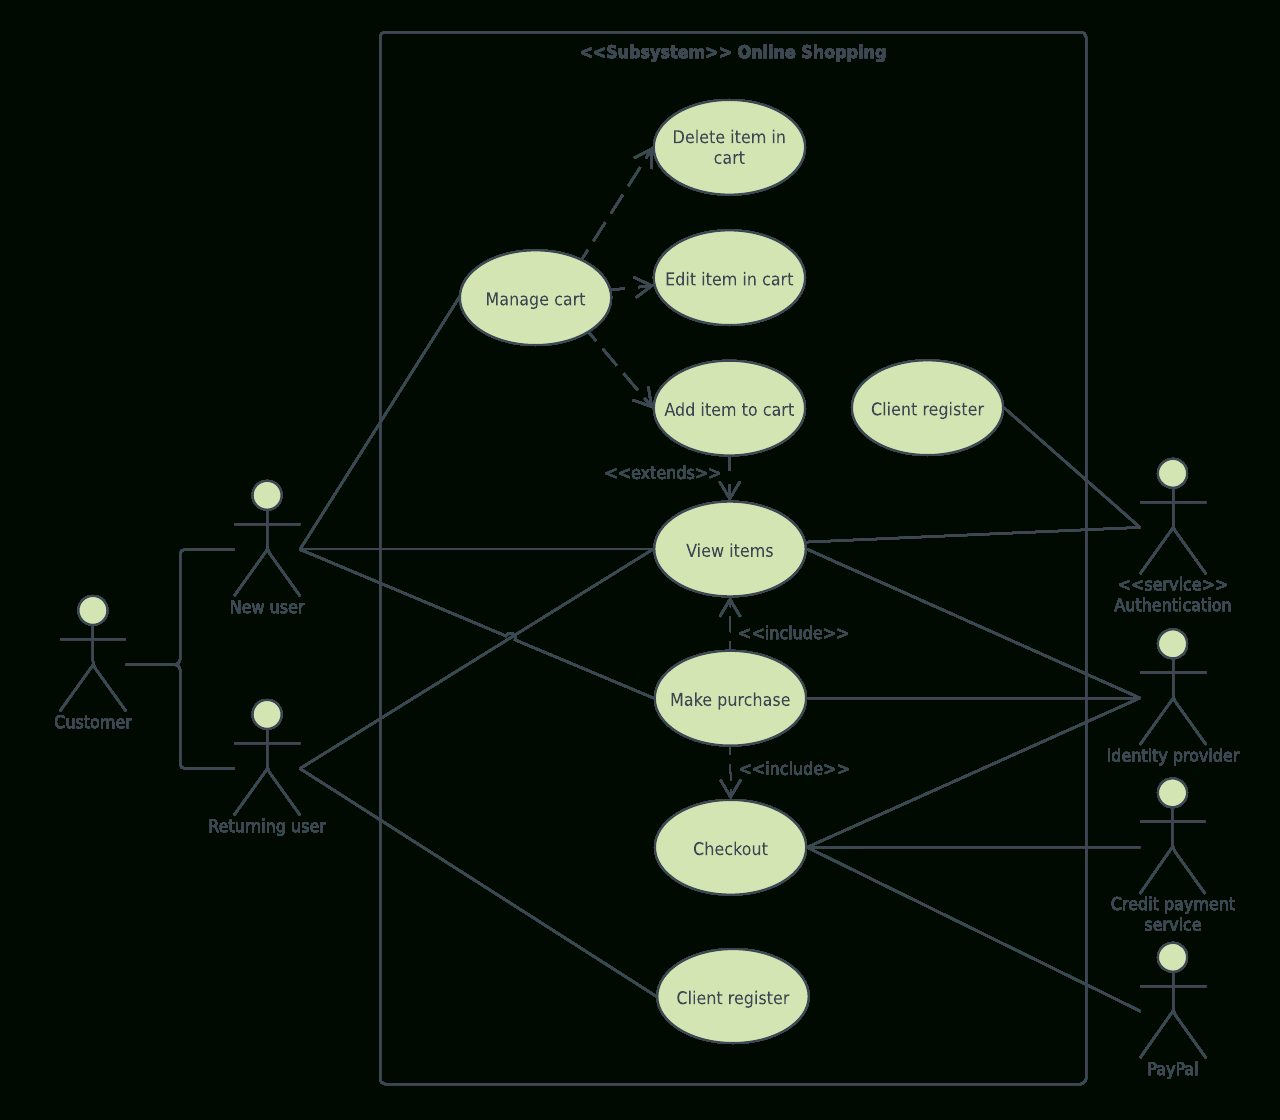 Uml Diagram Templates And Examples | Lucidchart Blog throughout E Wallet Er Diagram